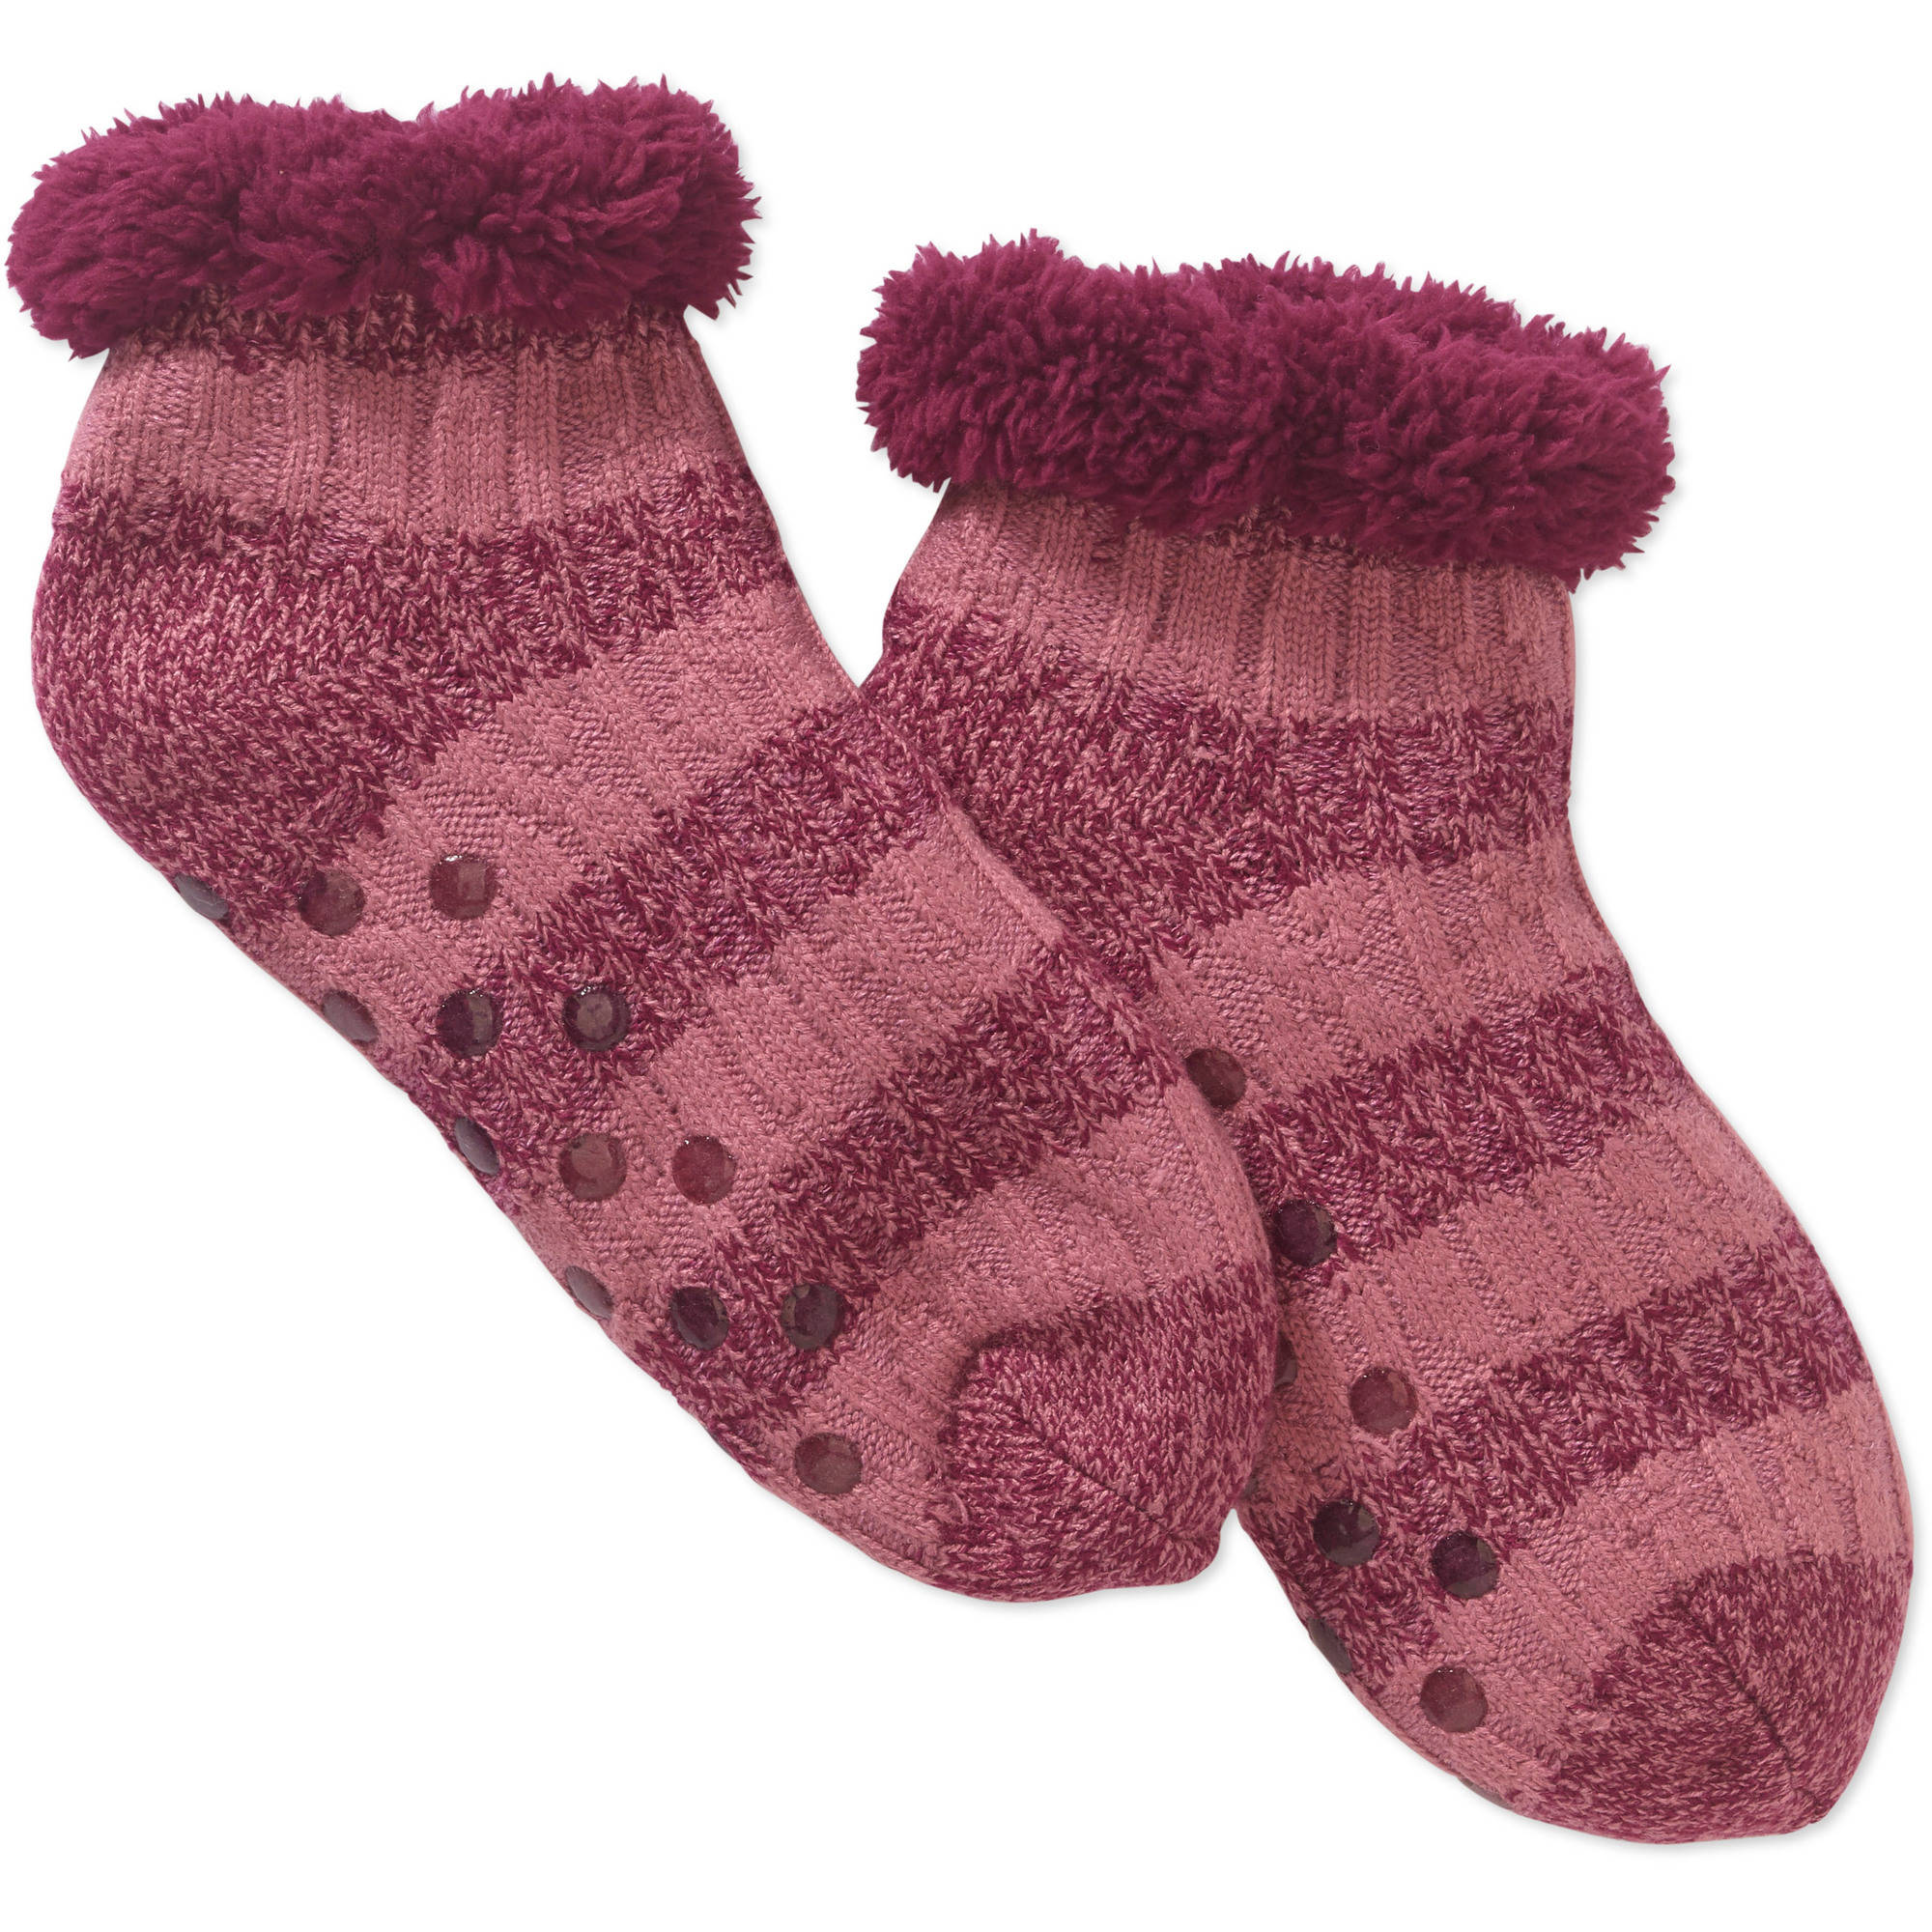 Cozy Warmer Cable Knit Striped Slipper Socks